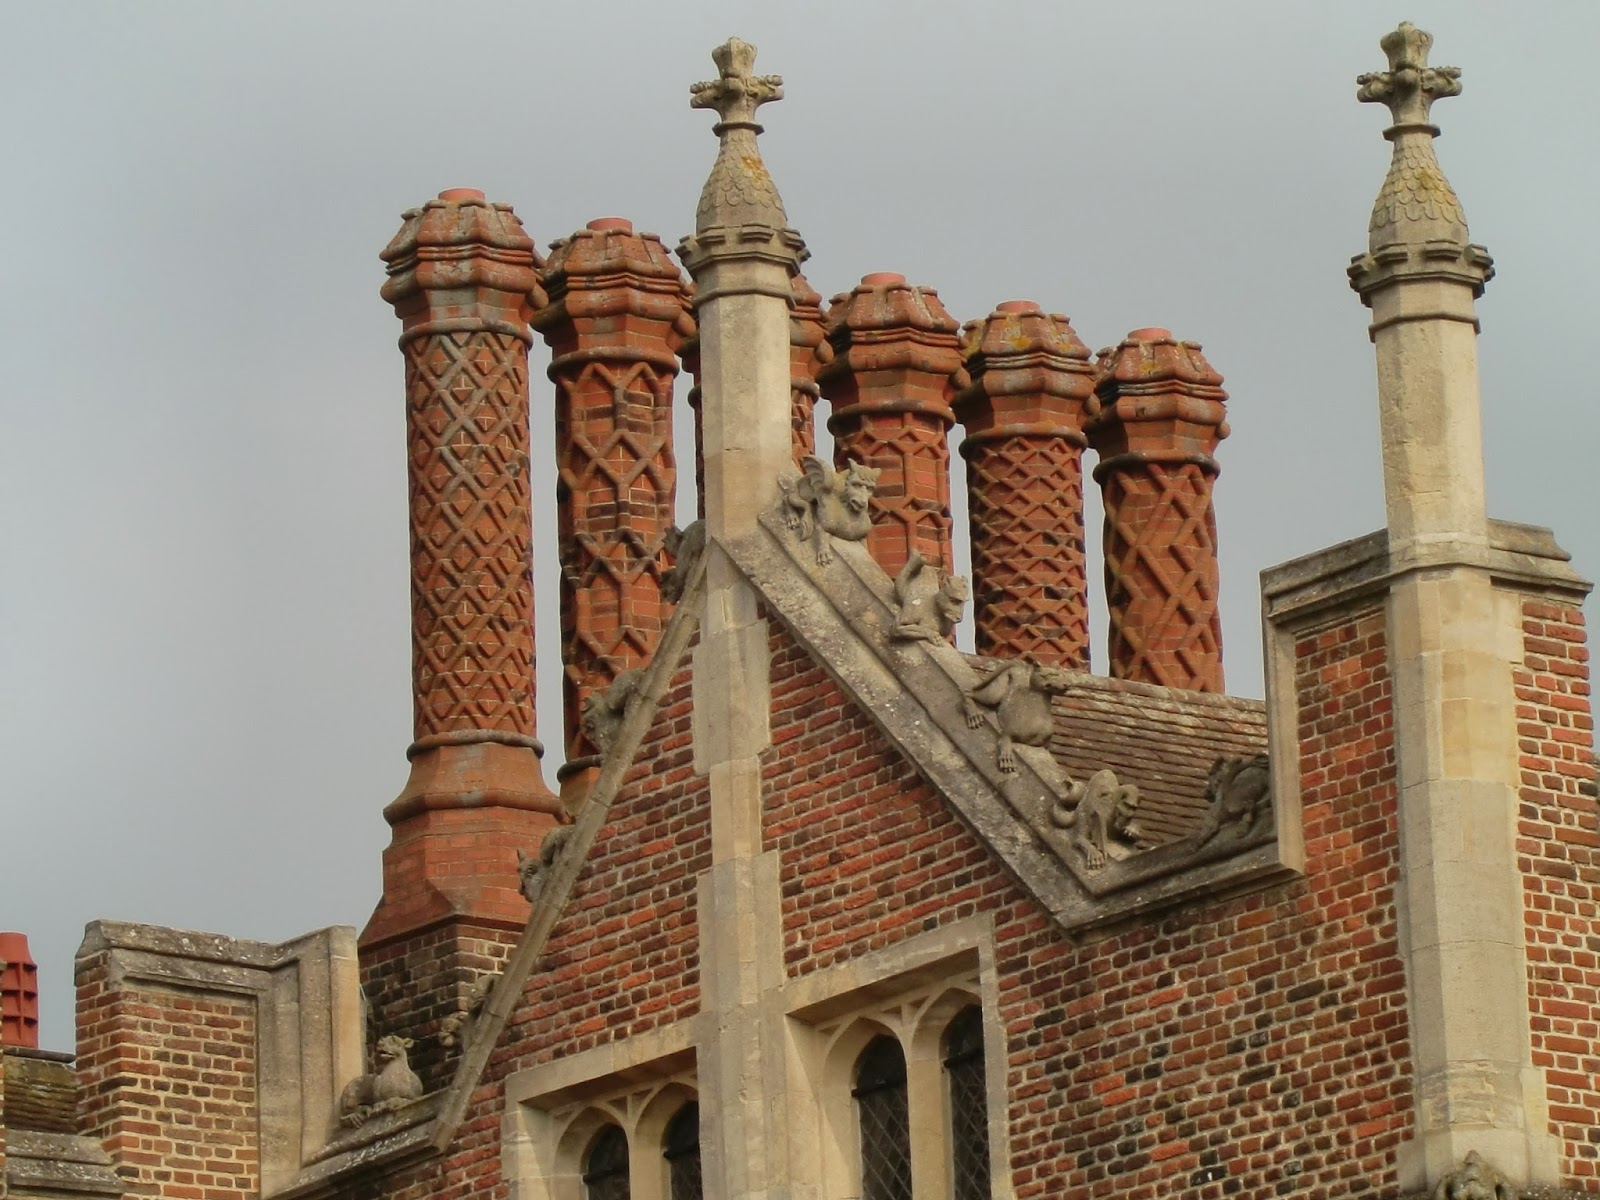 How Significant Were European Influences on the Development of Tudor Palaces?